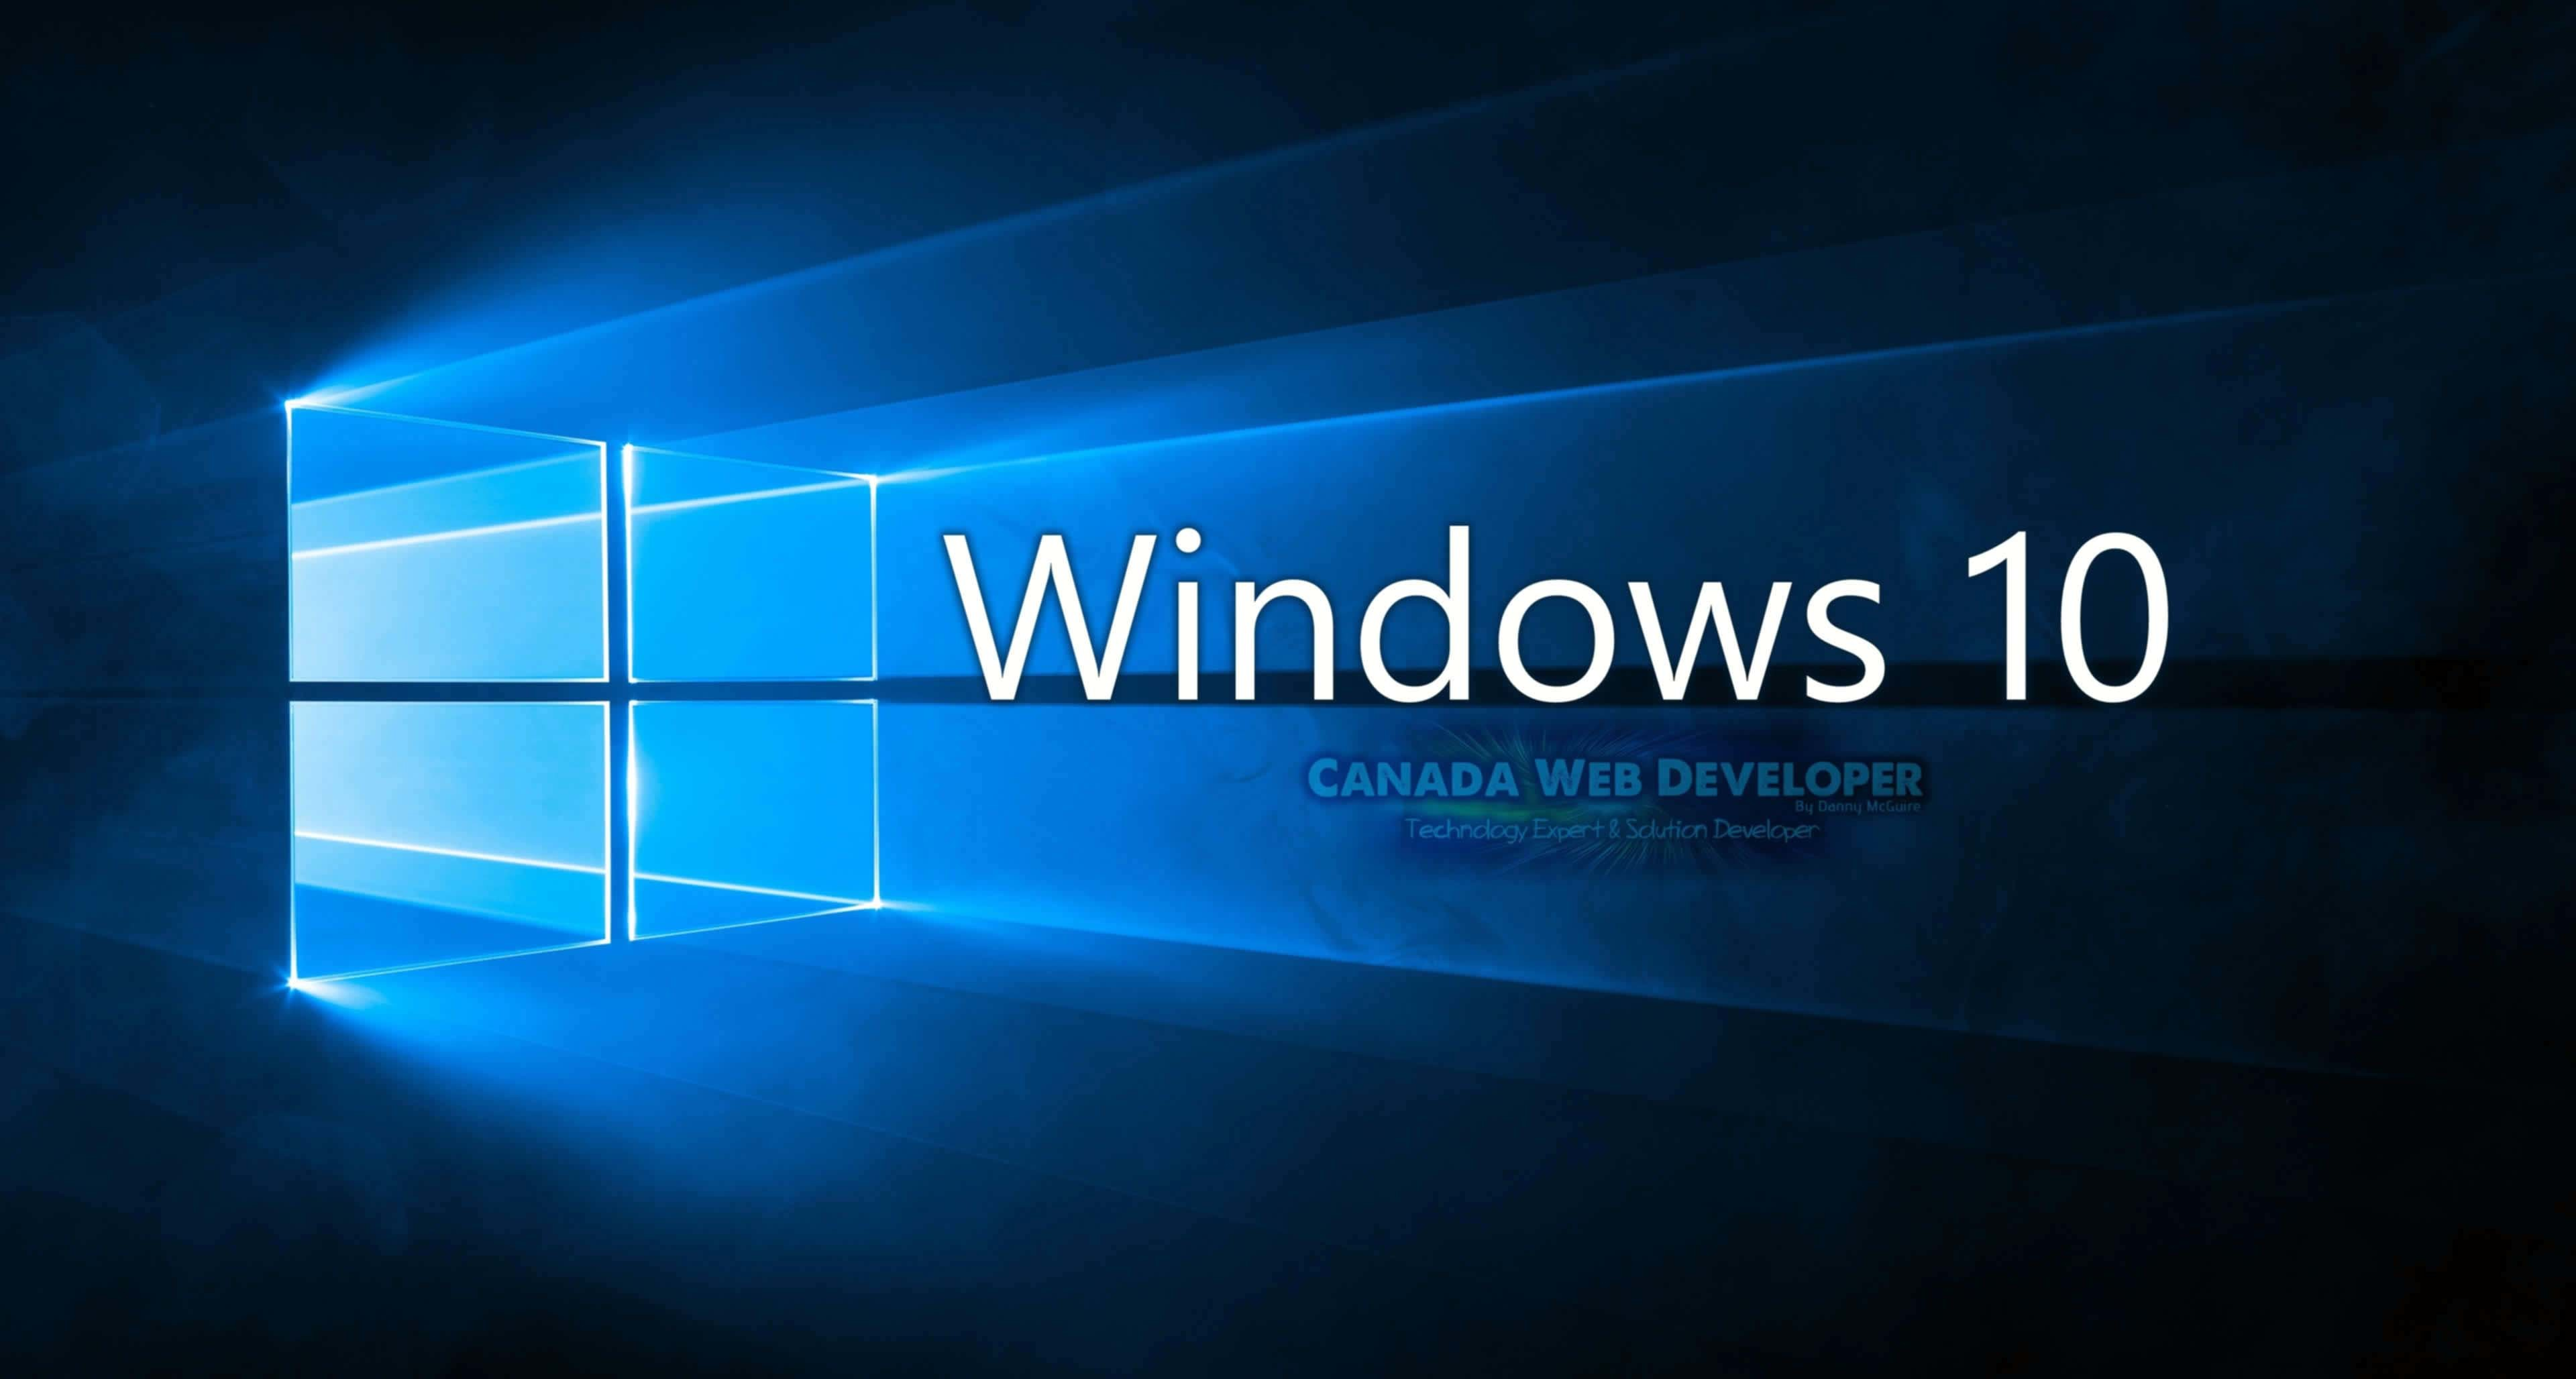 How To Get An Animated Wallpaper Windows 10 Web Developer Wallpaper 84 Images